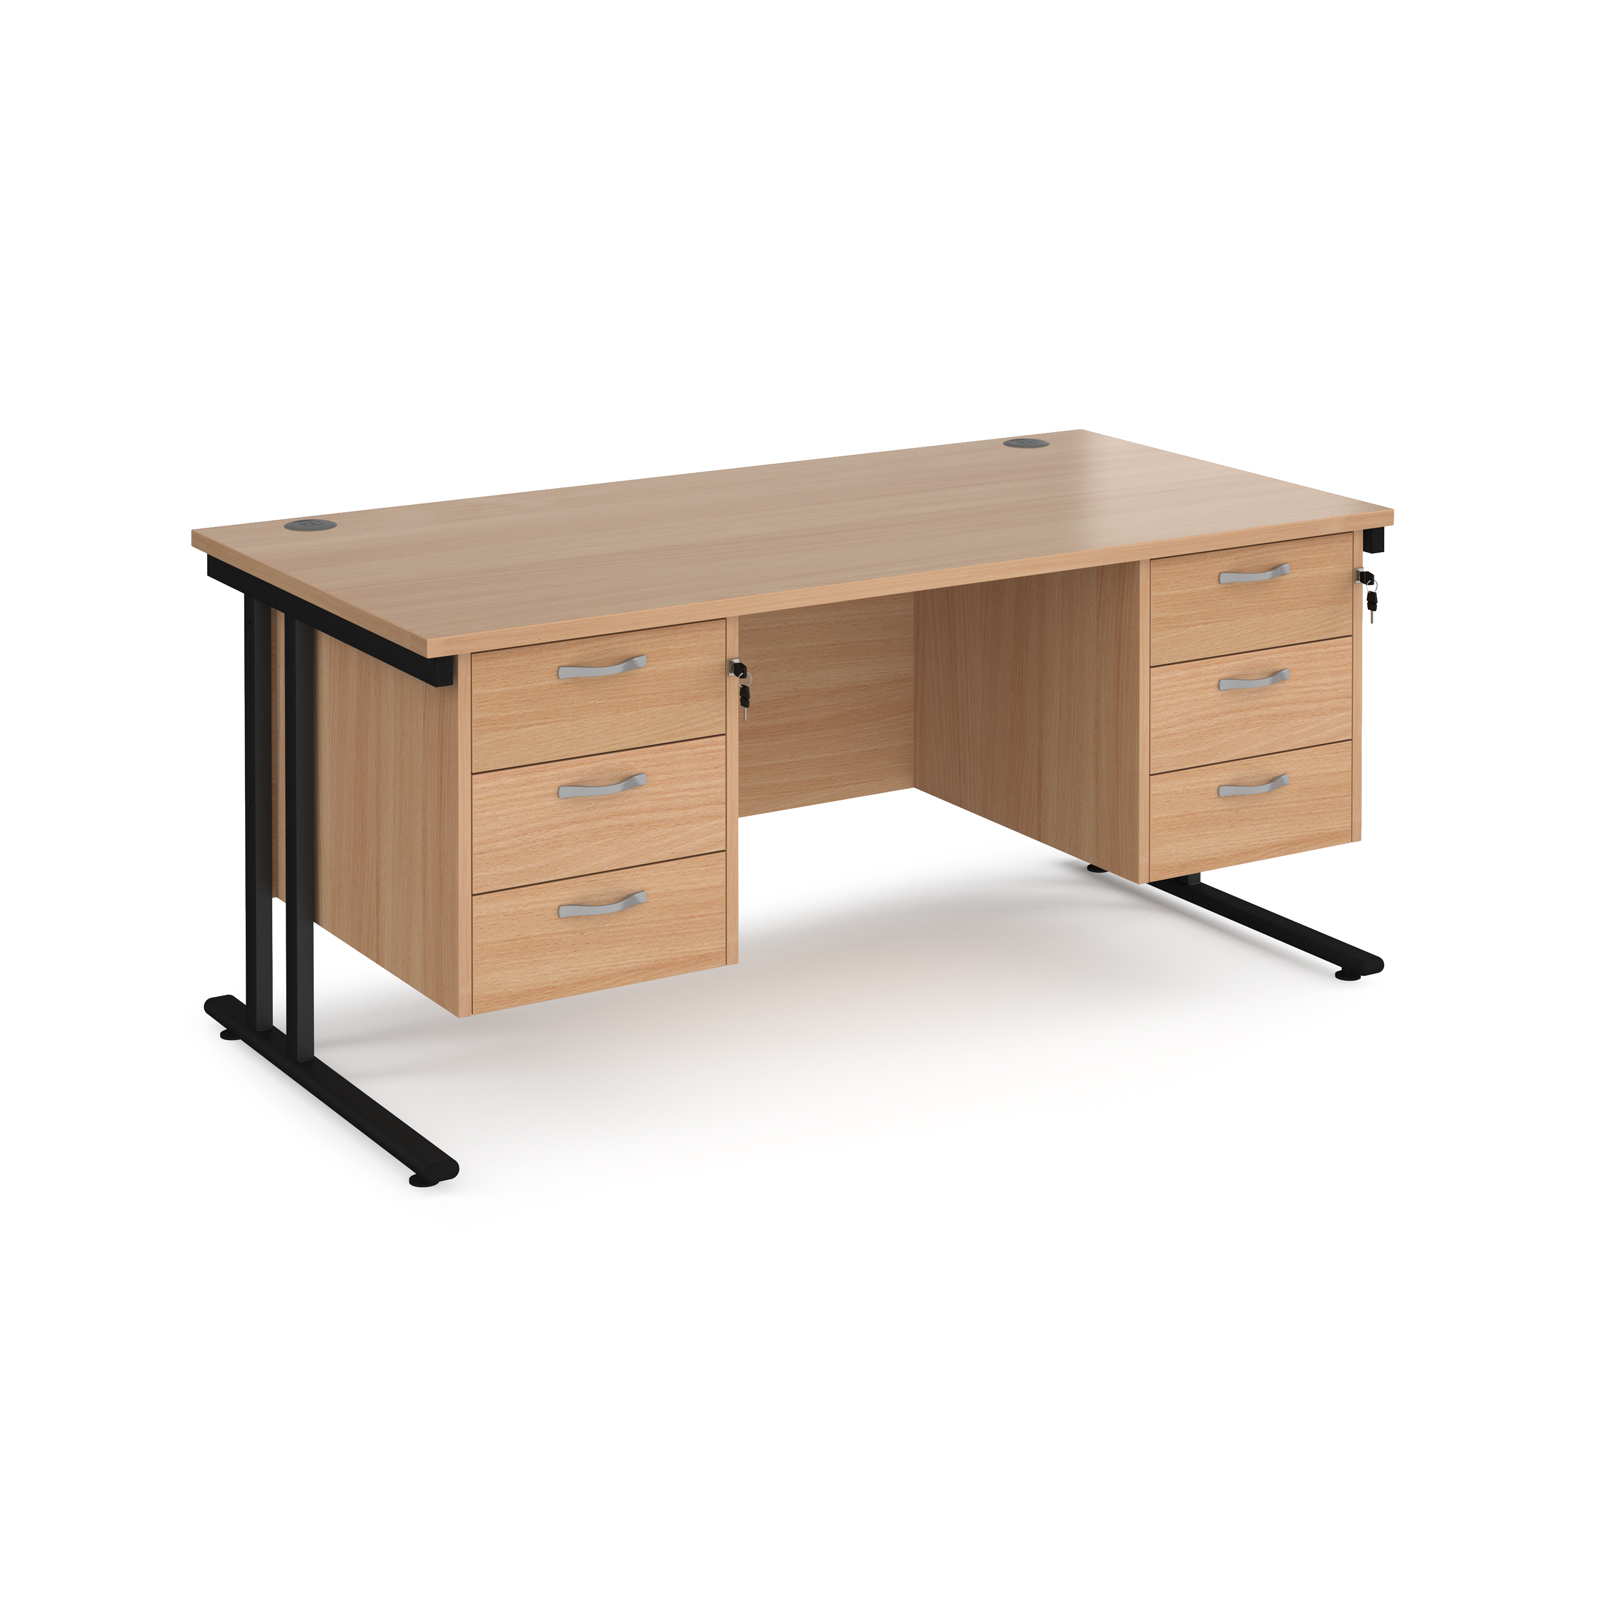 Maestro 25 straight desk 1600mm x 800mm with two x 3 drawer pedestals - black cantilever leg frame, beech top